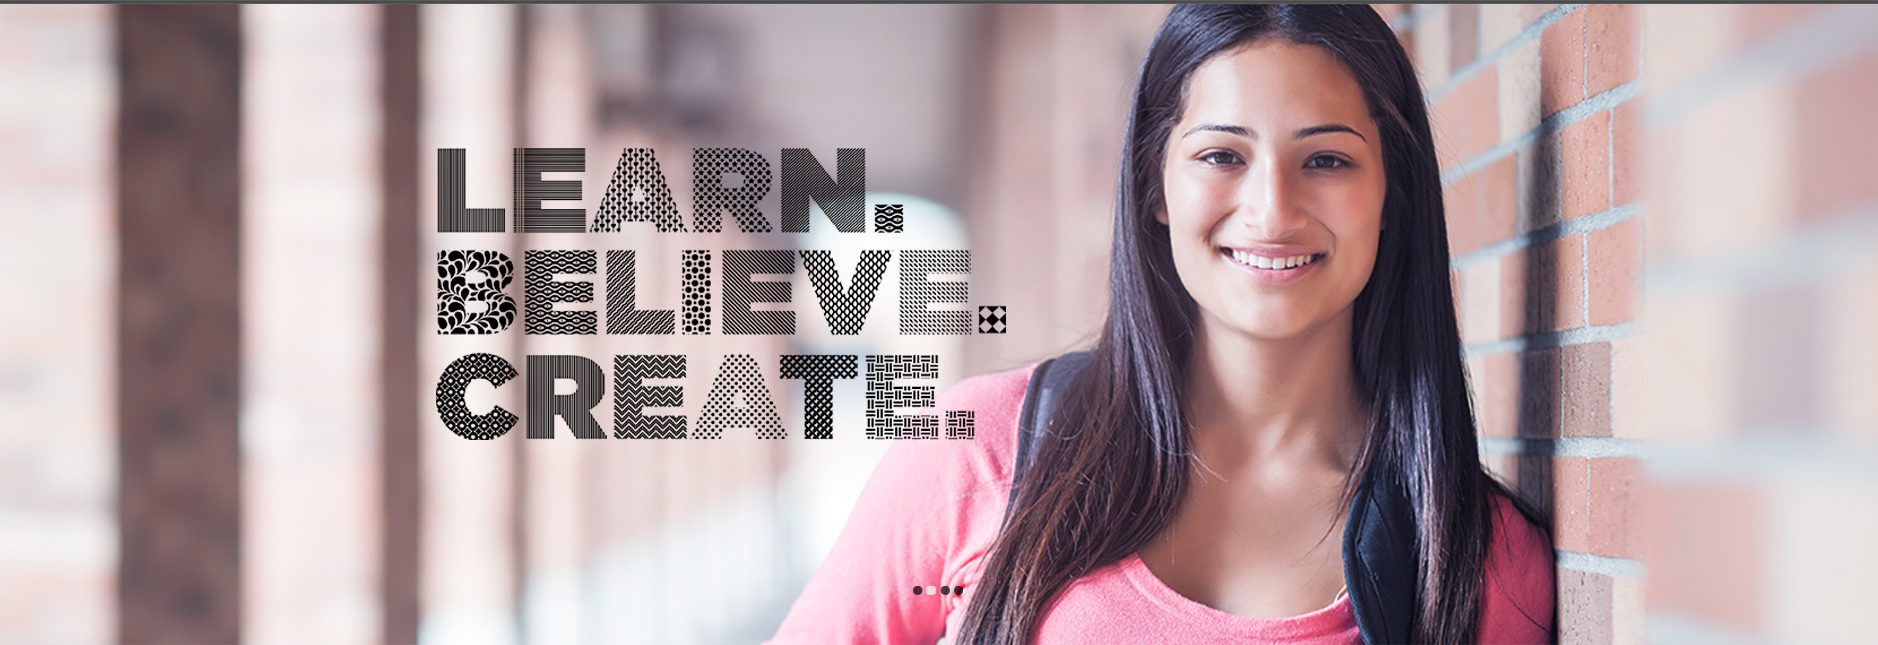 Learn.believe.create